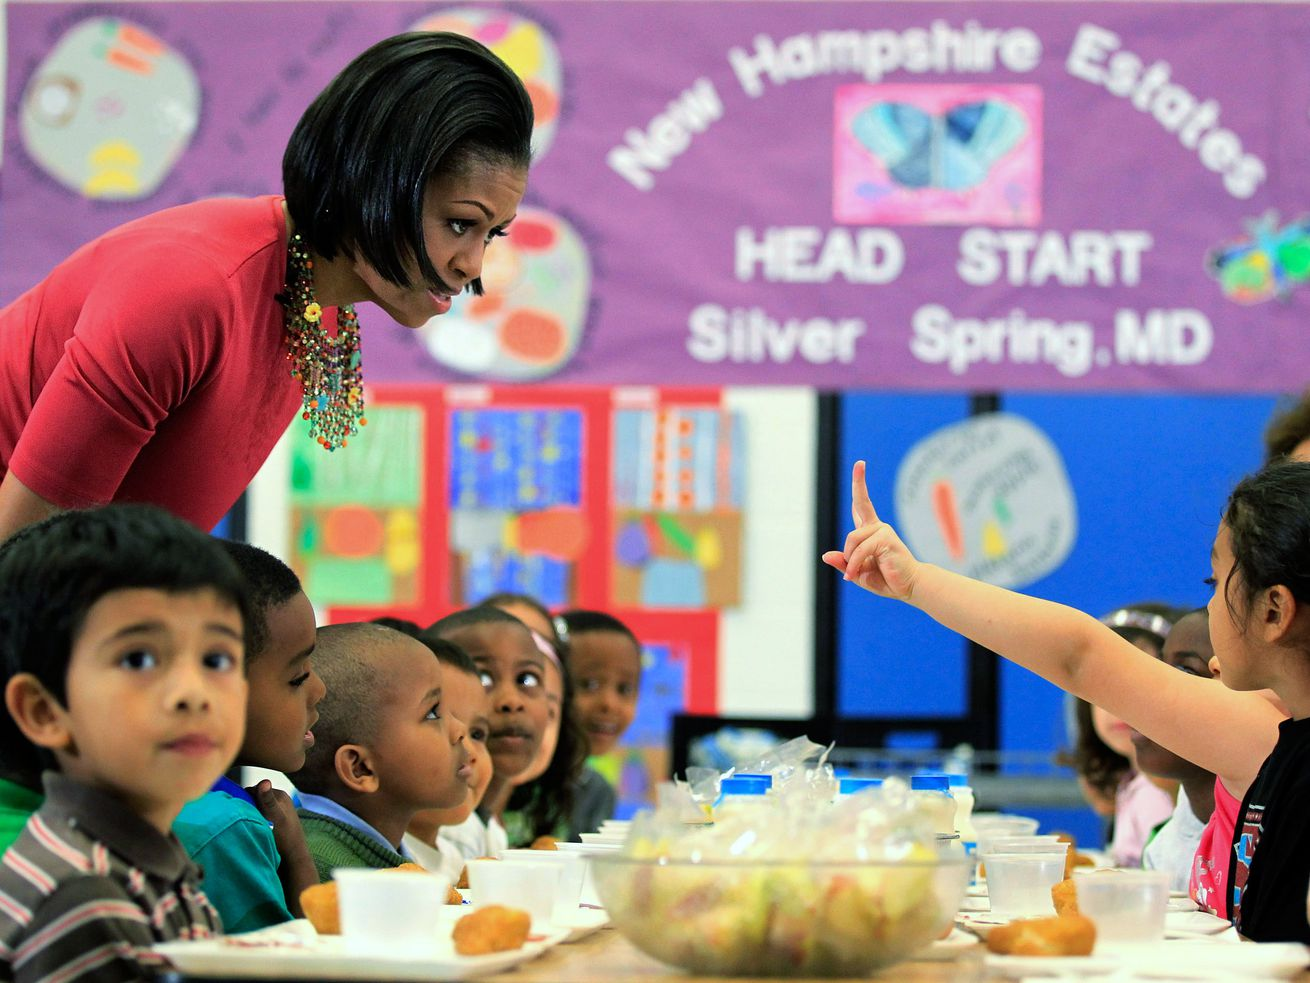 Obama talks with students having lunch.